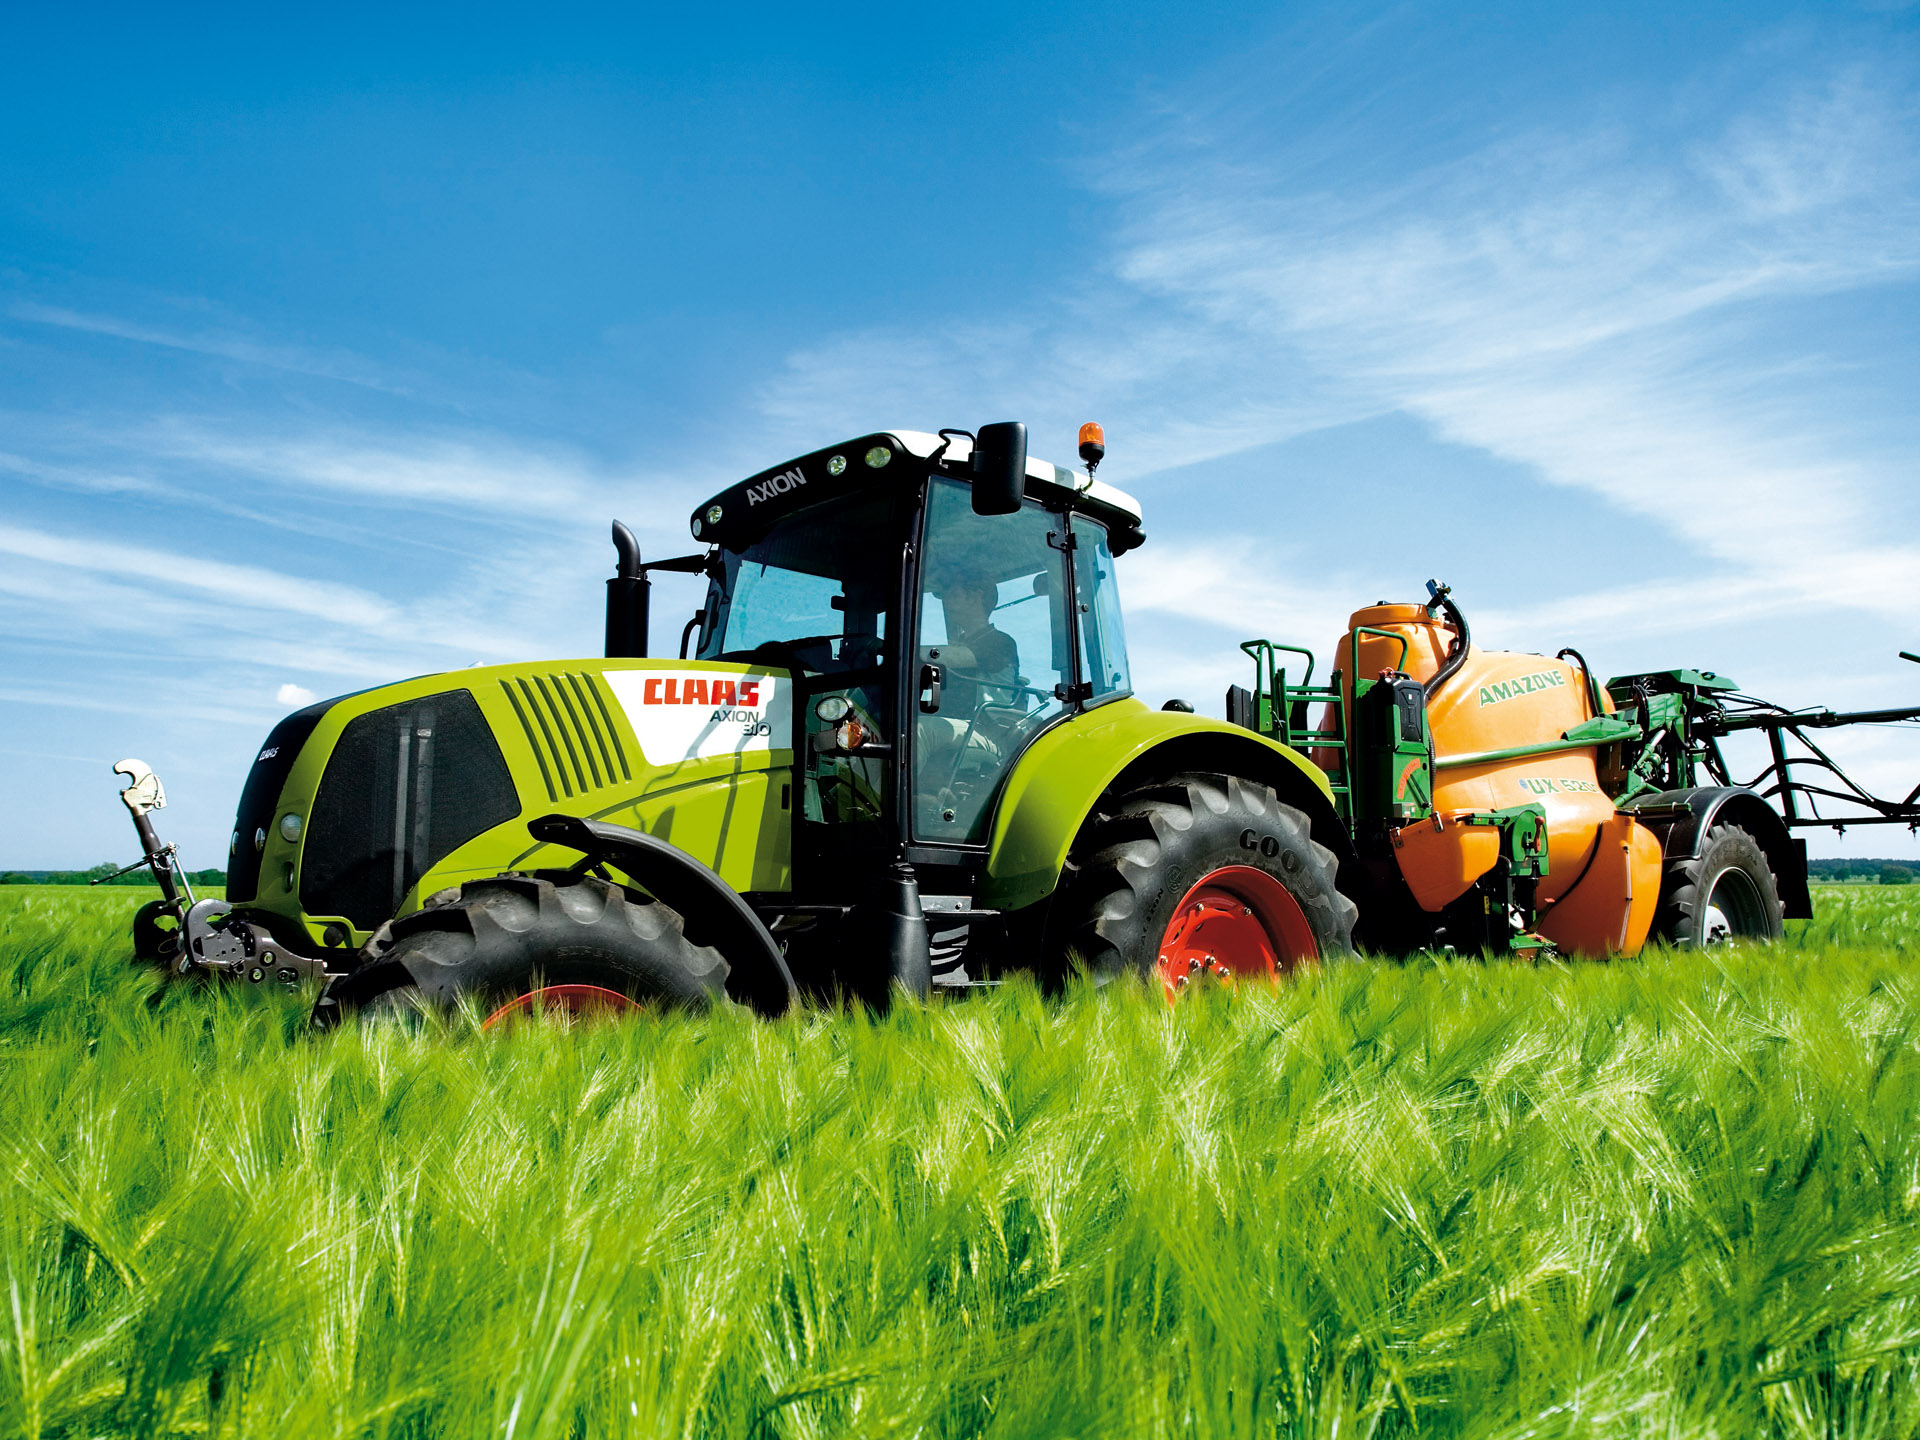 Claas Photo Gallery 40 High Quality Claas Pictures